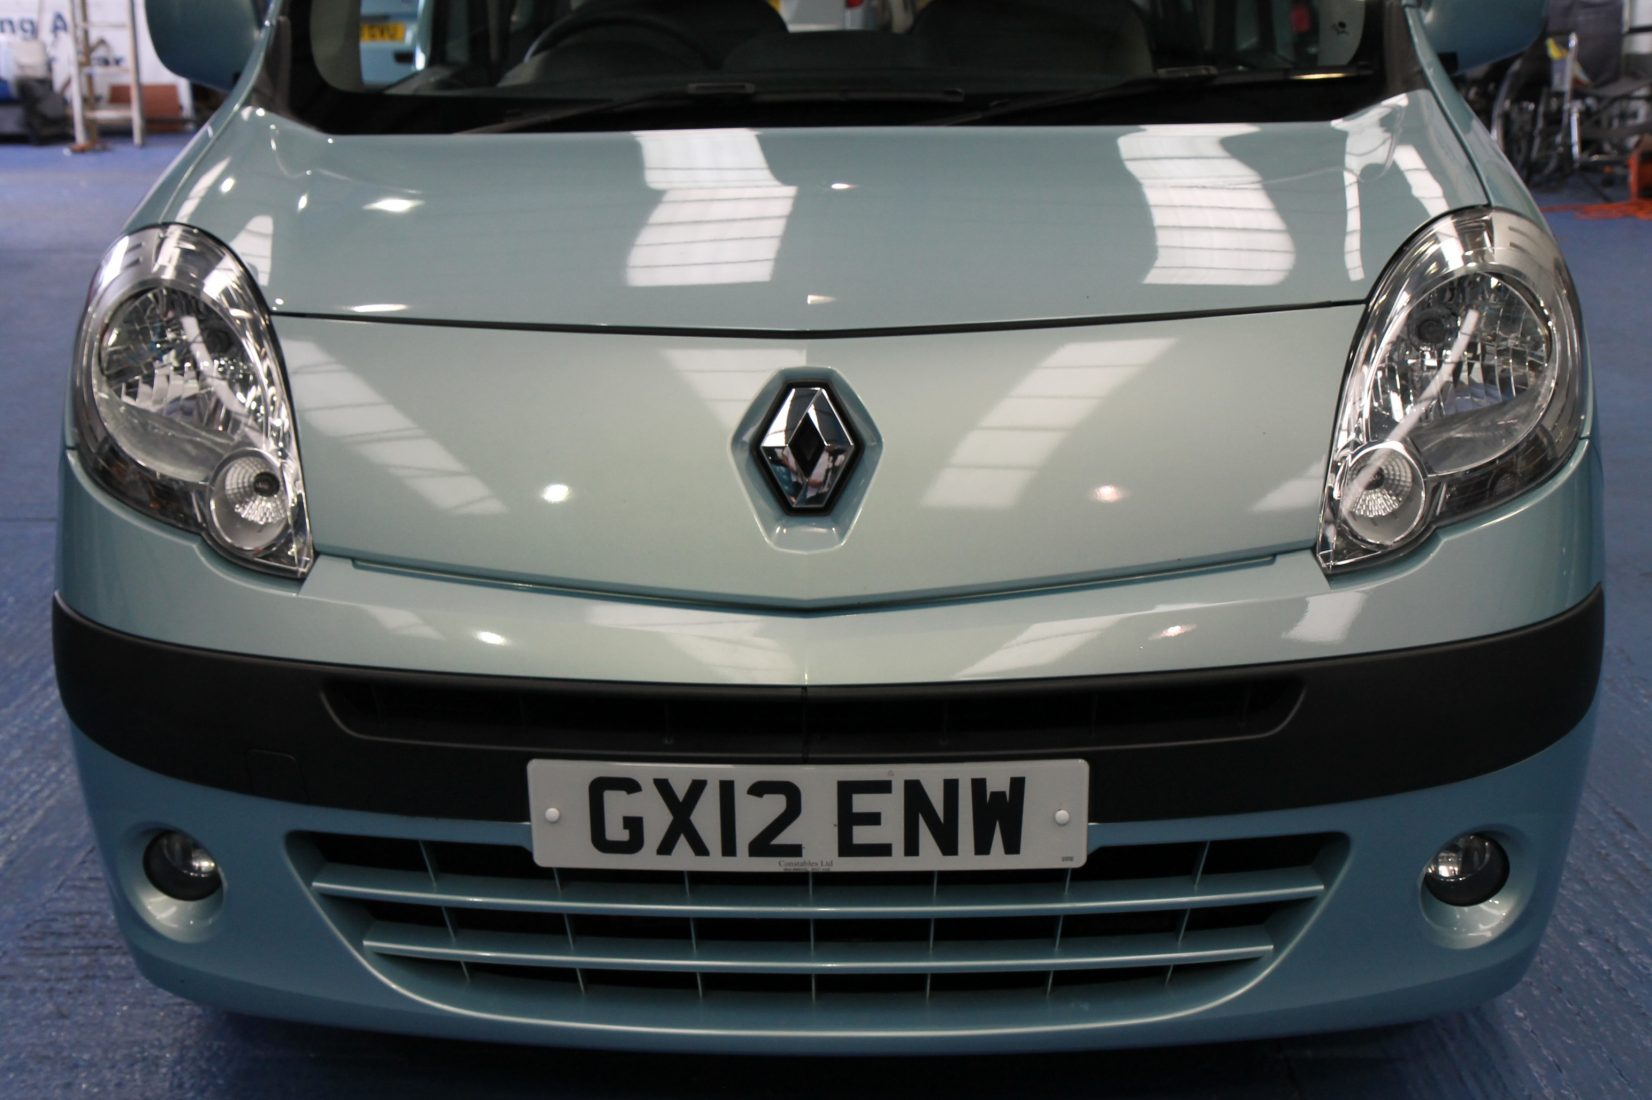 What Lights Are Used To Indicate A Disabled Car